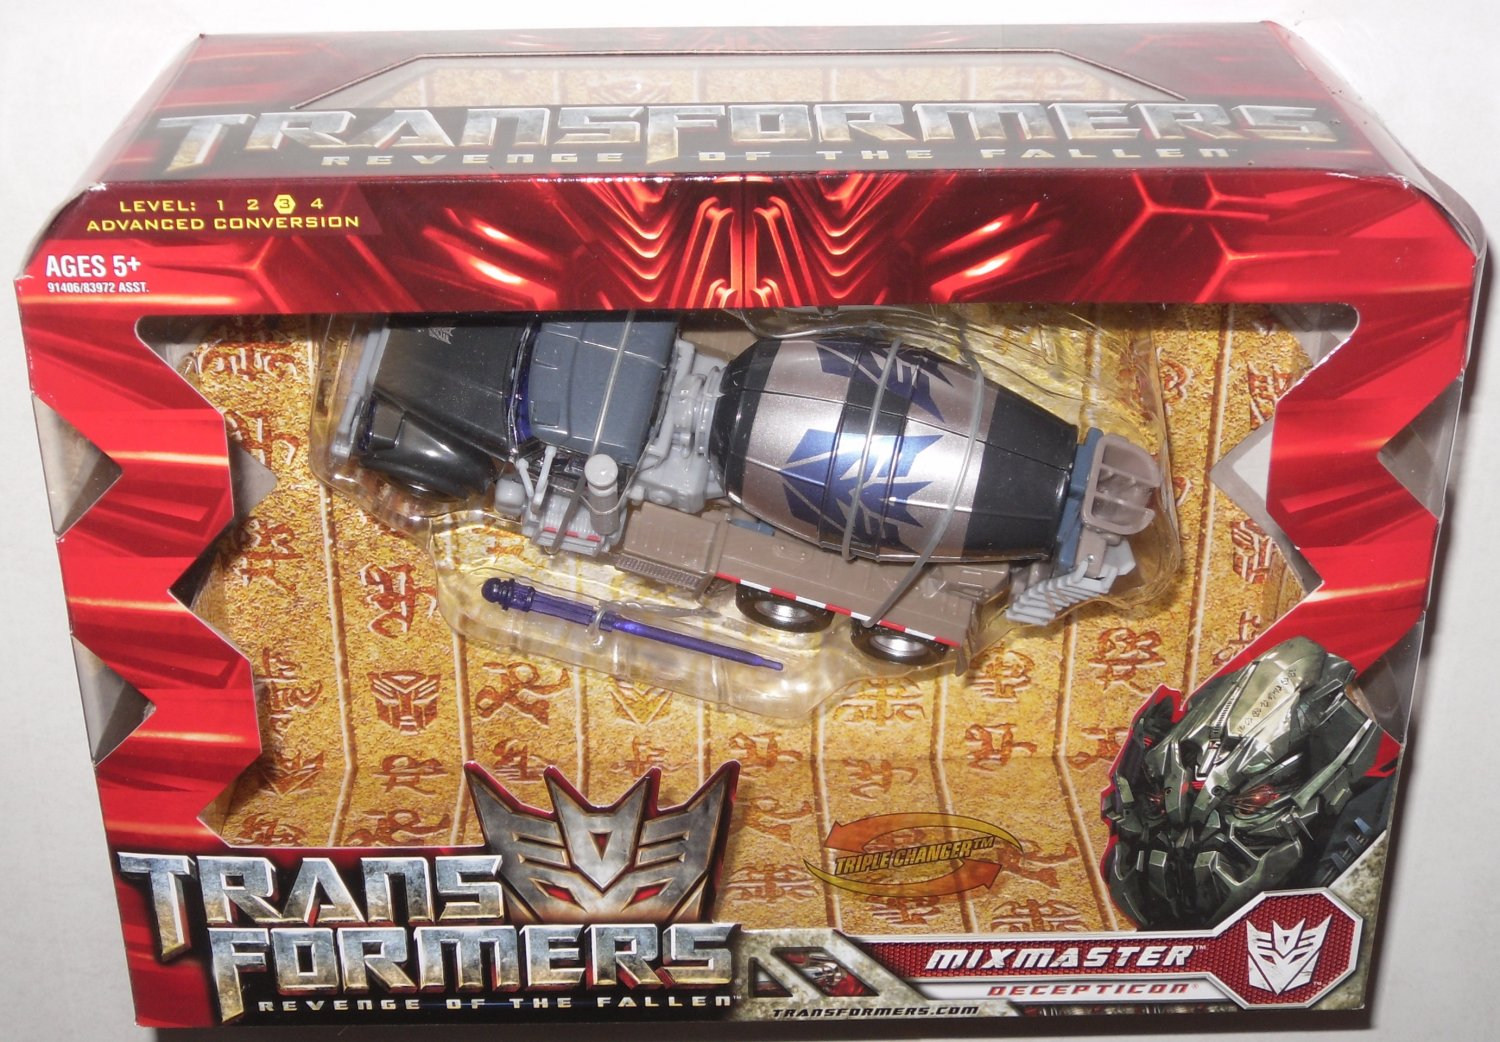 Transformers Revenge Of The Fallen Mix Master Figure Hasbro